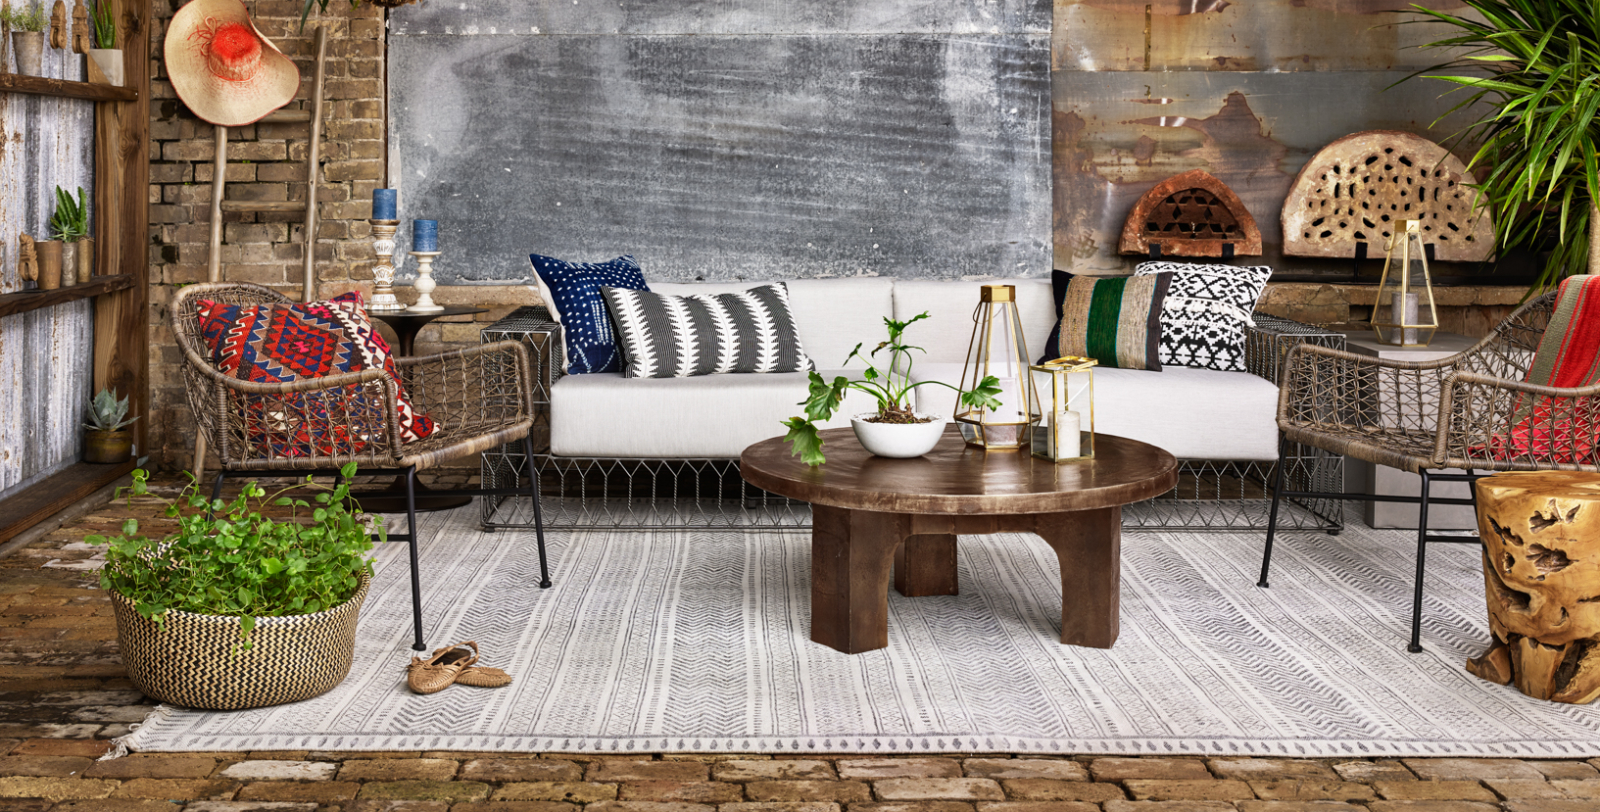 Zen home furniture Collection Holiday Furniture Sale Cache Crazy Zin Home Eclectic Modern Industrial Style Furniture